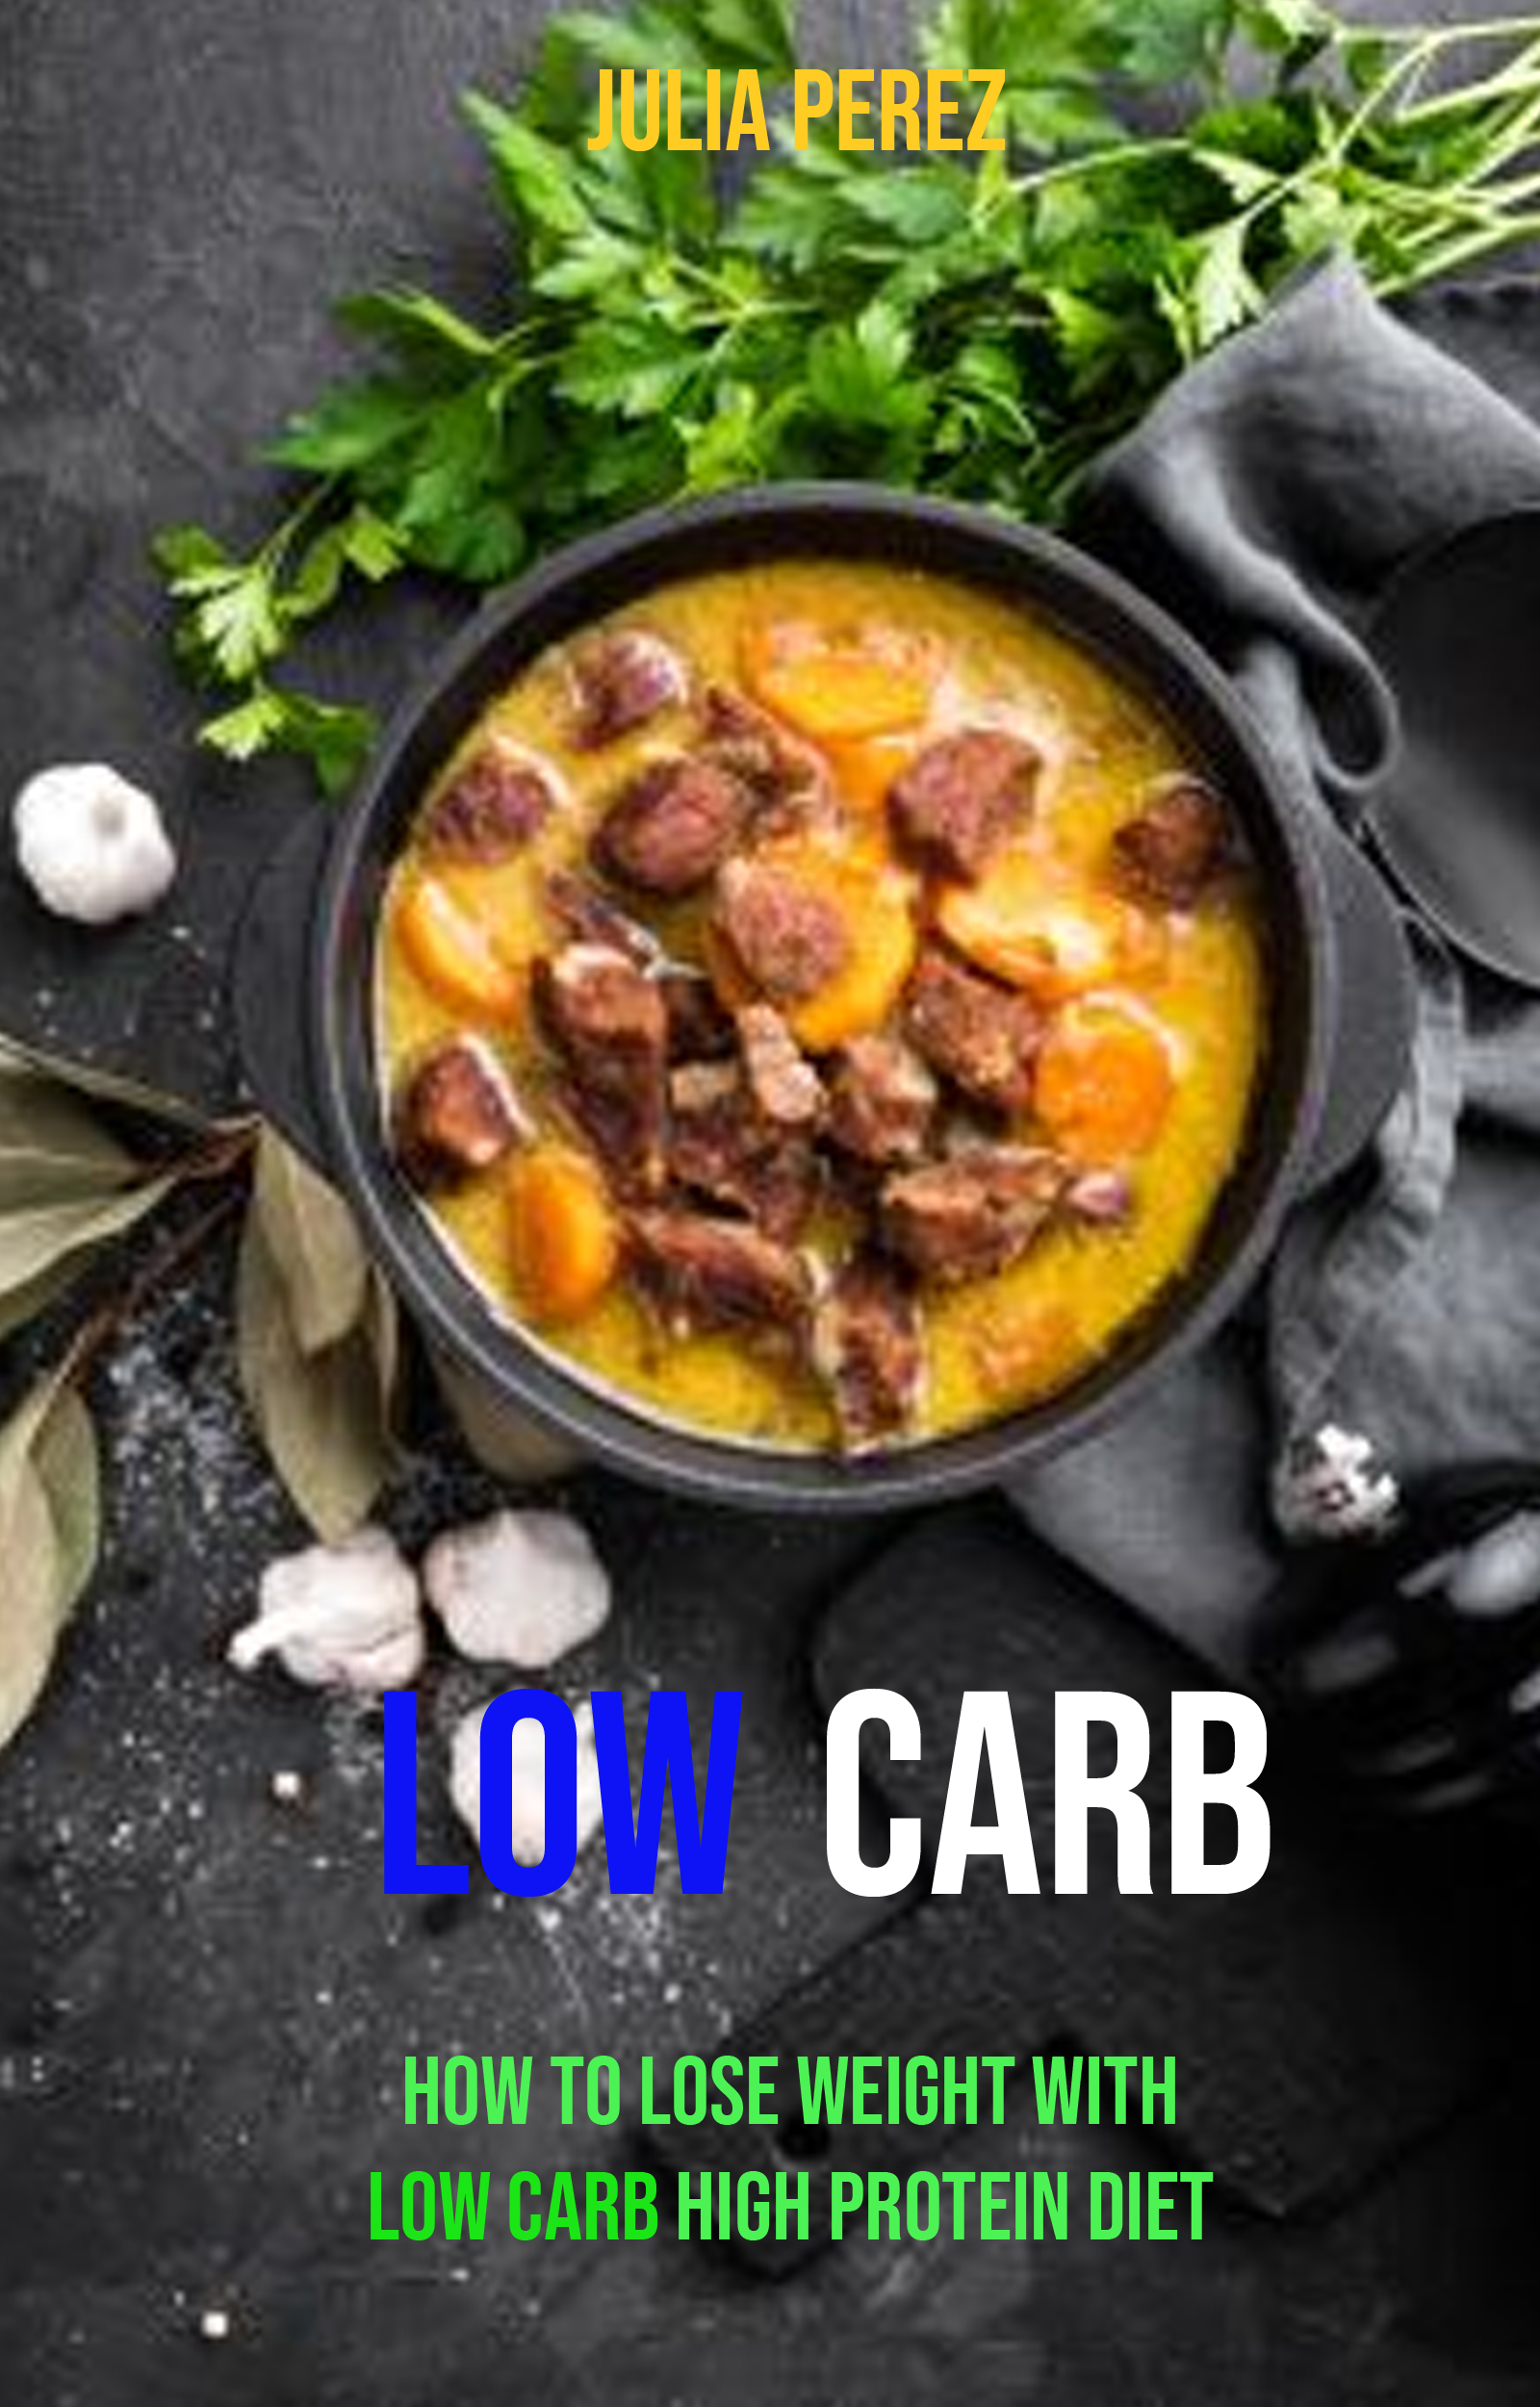 Low carb: how to lose weight with low carb high protein diet